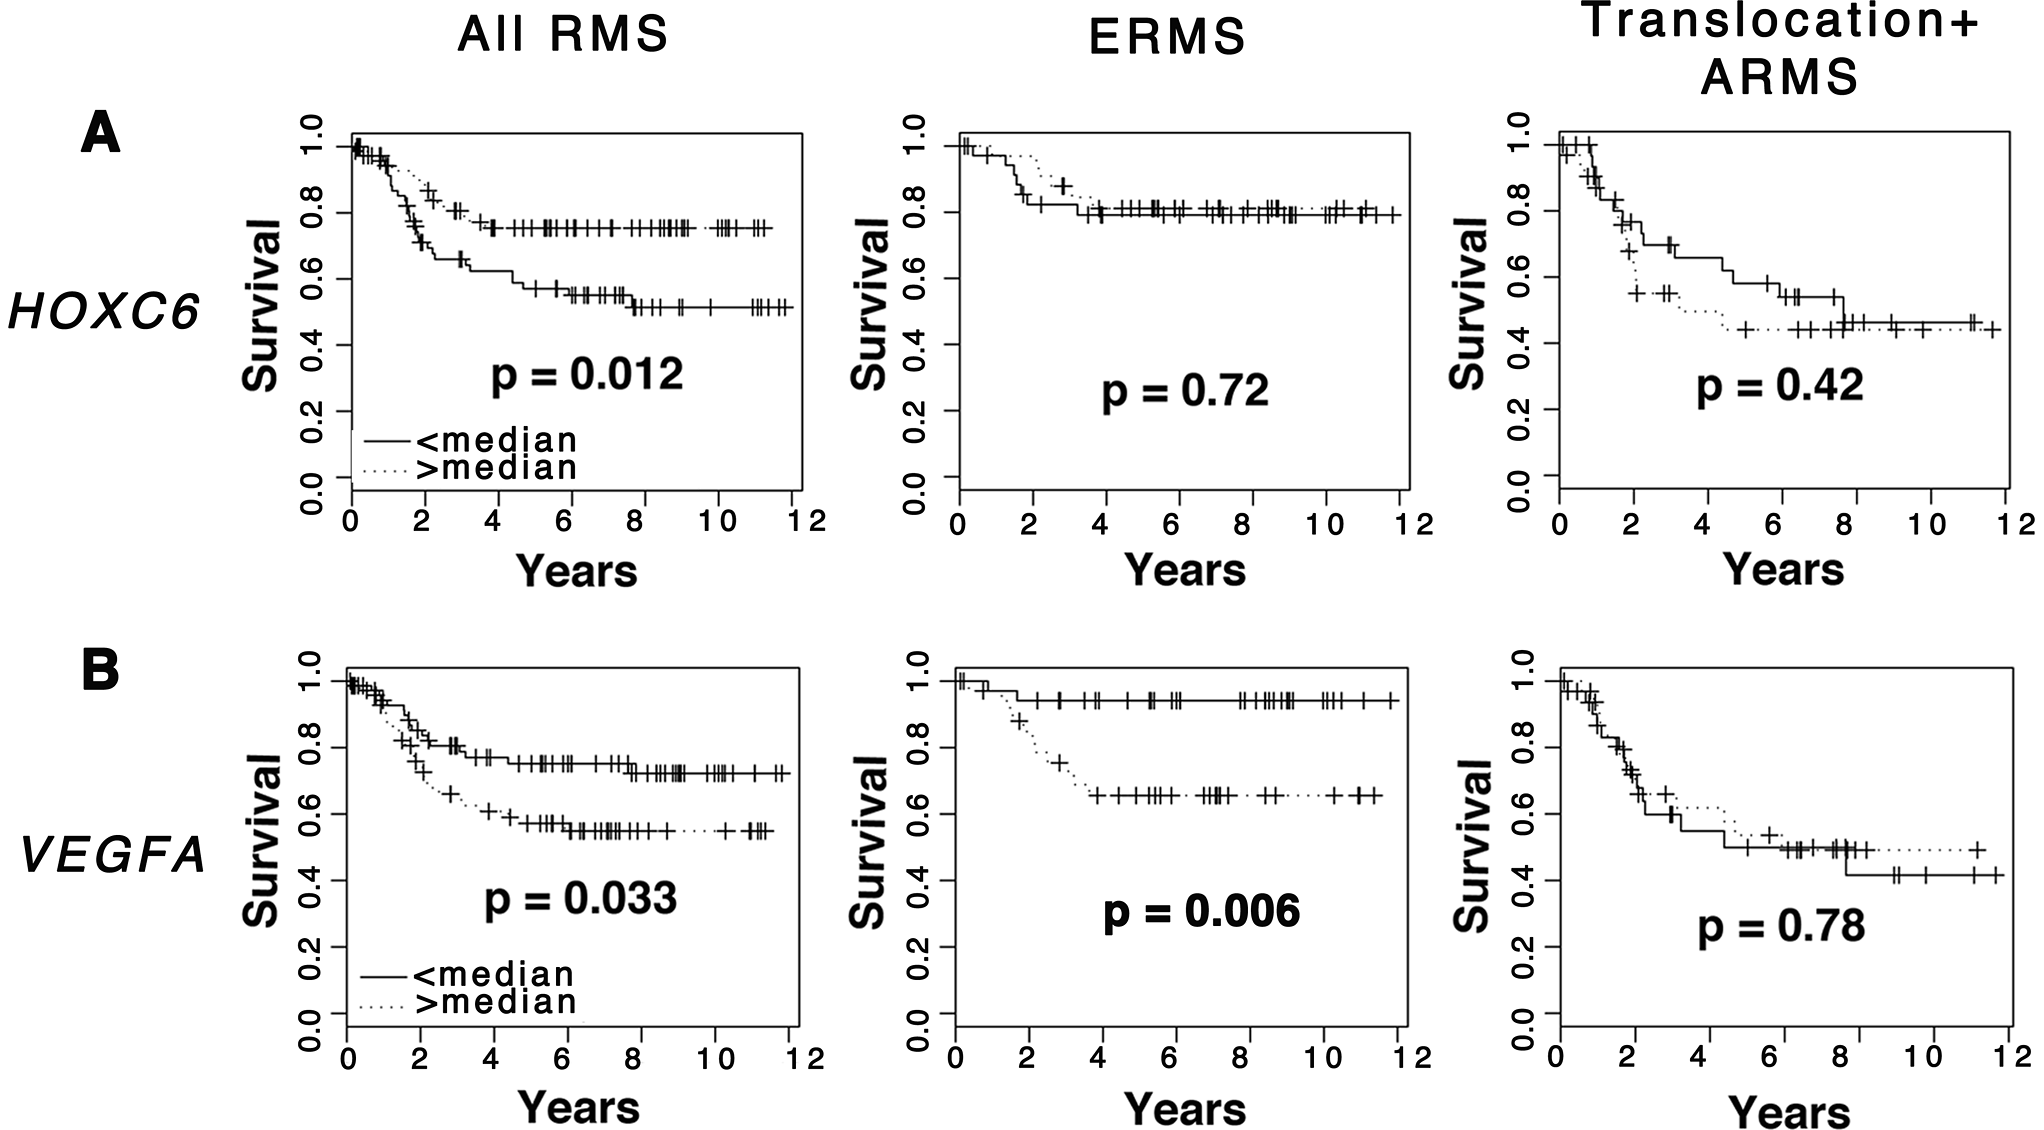 Elevated <i>VEGFA</i> expression correlates with poor clinical outcome in rhabdomyosarcoma.